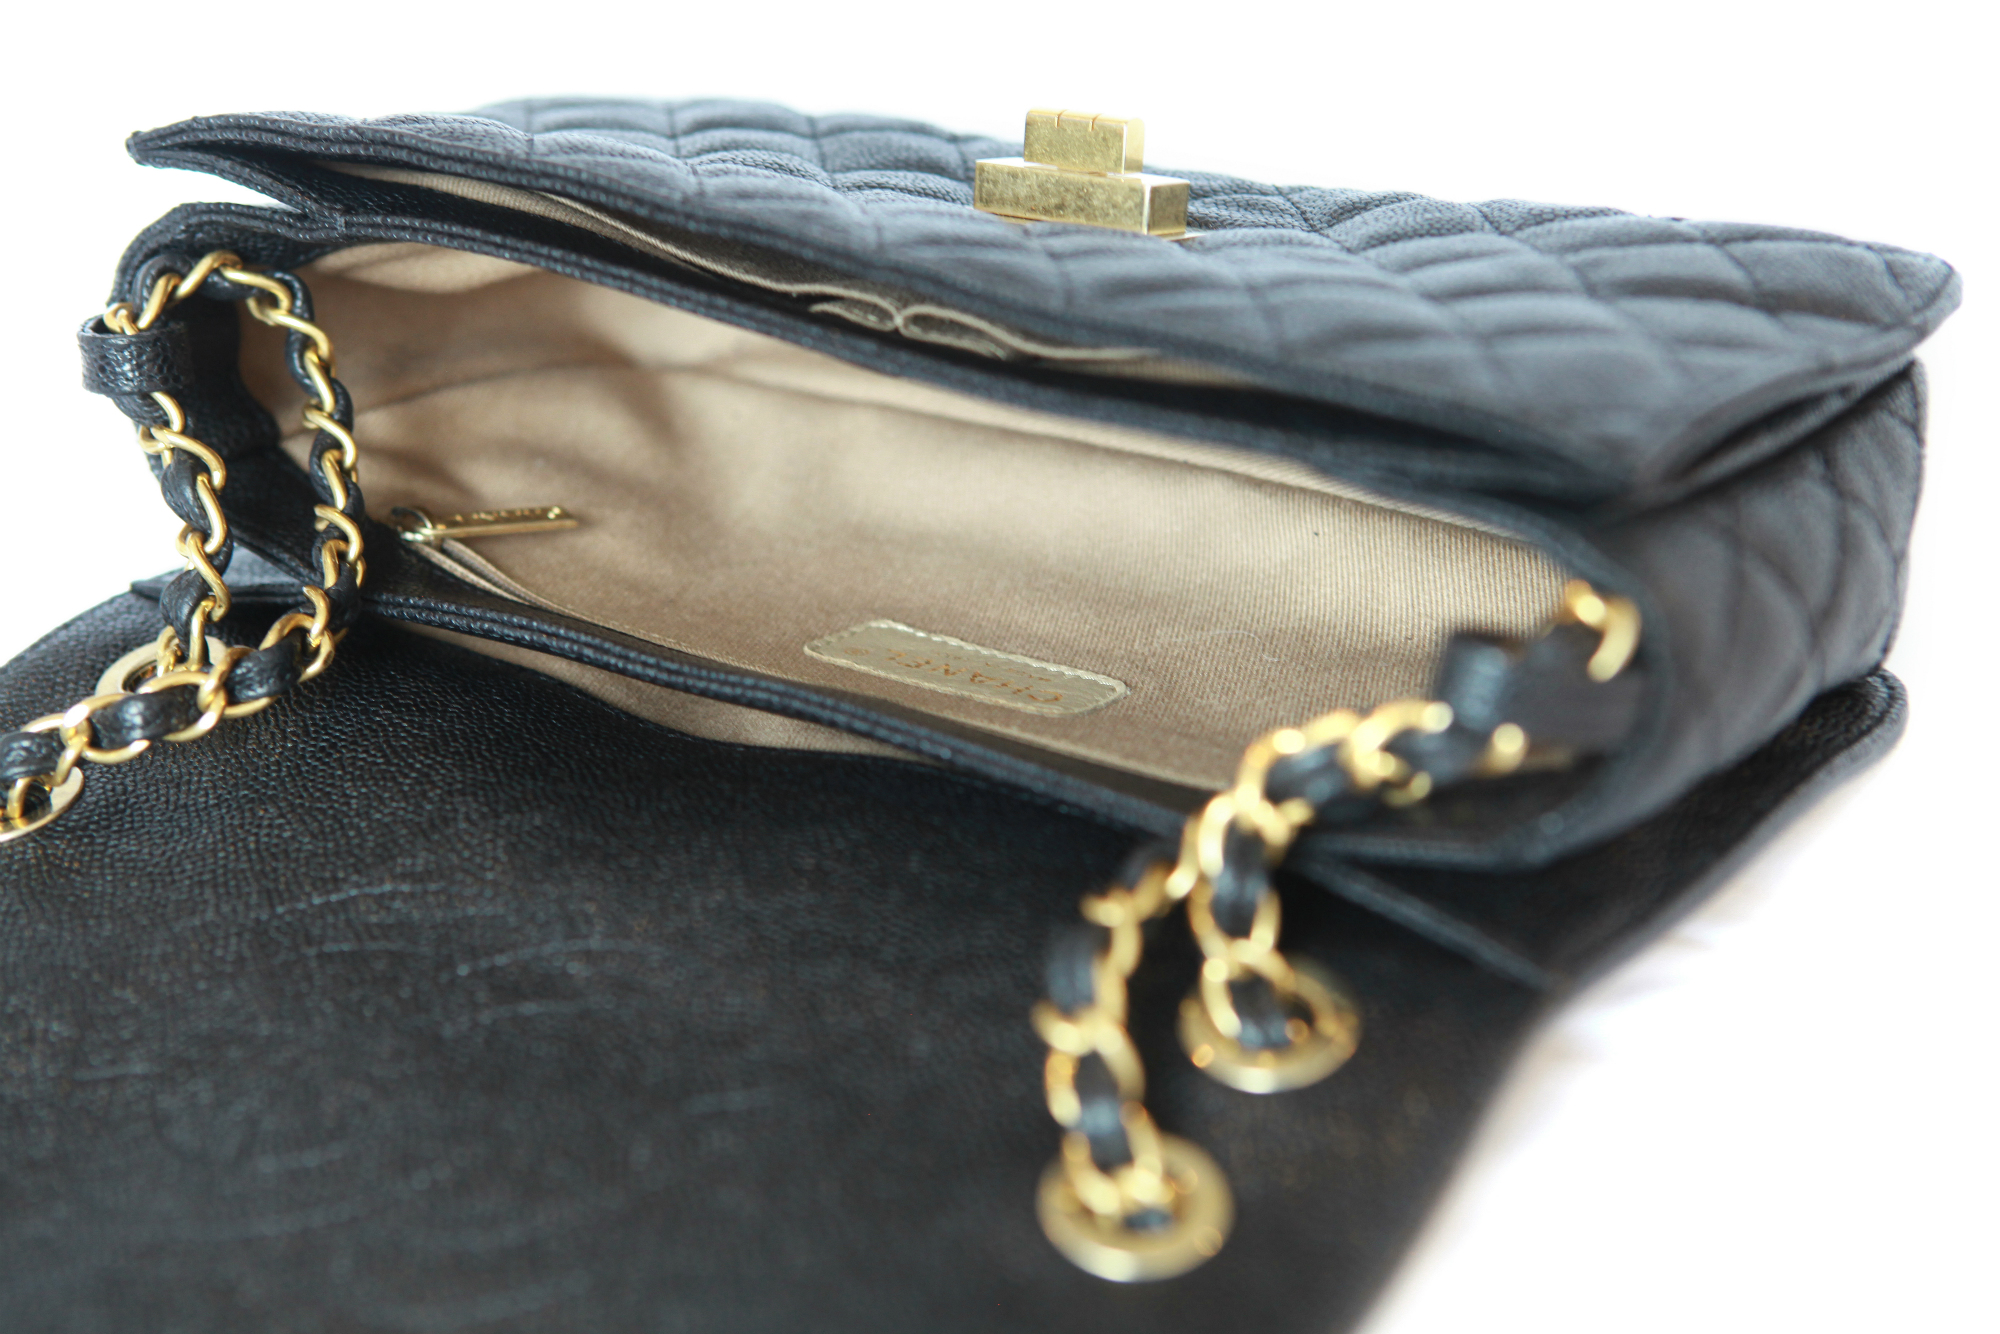 0015f2bfd67 CHANEL_CLASSIC_GOLD_FLAP_BAG Chanel Classic  CHANEL_CLASSIC_GOLD_GOLD_FLAP_BAG